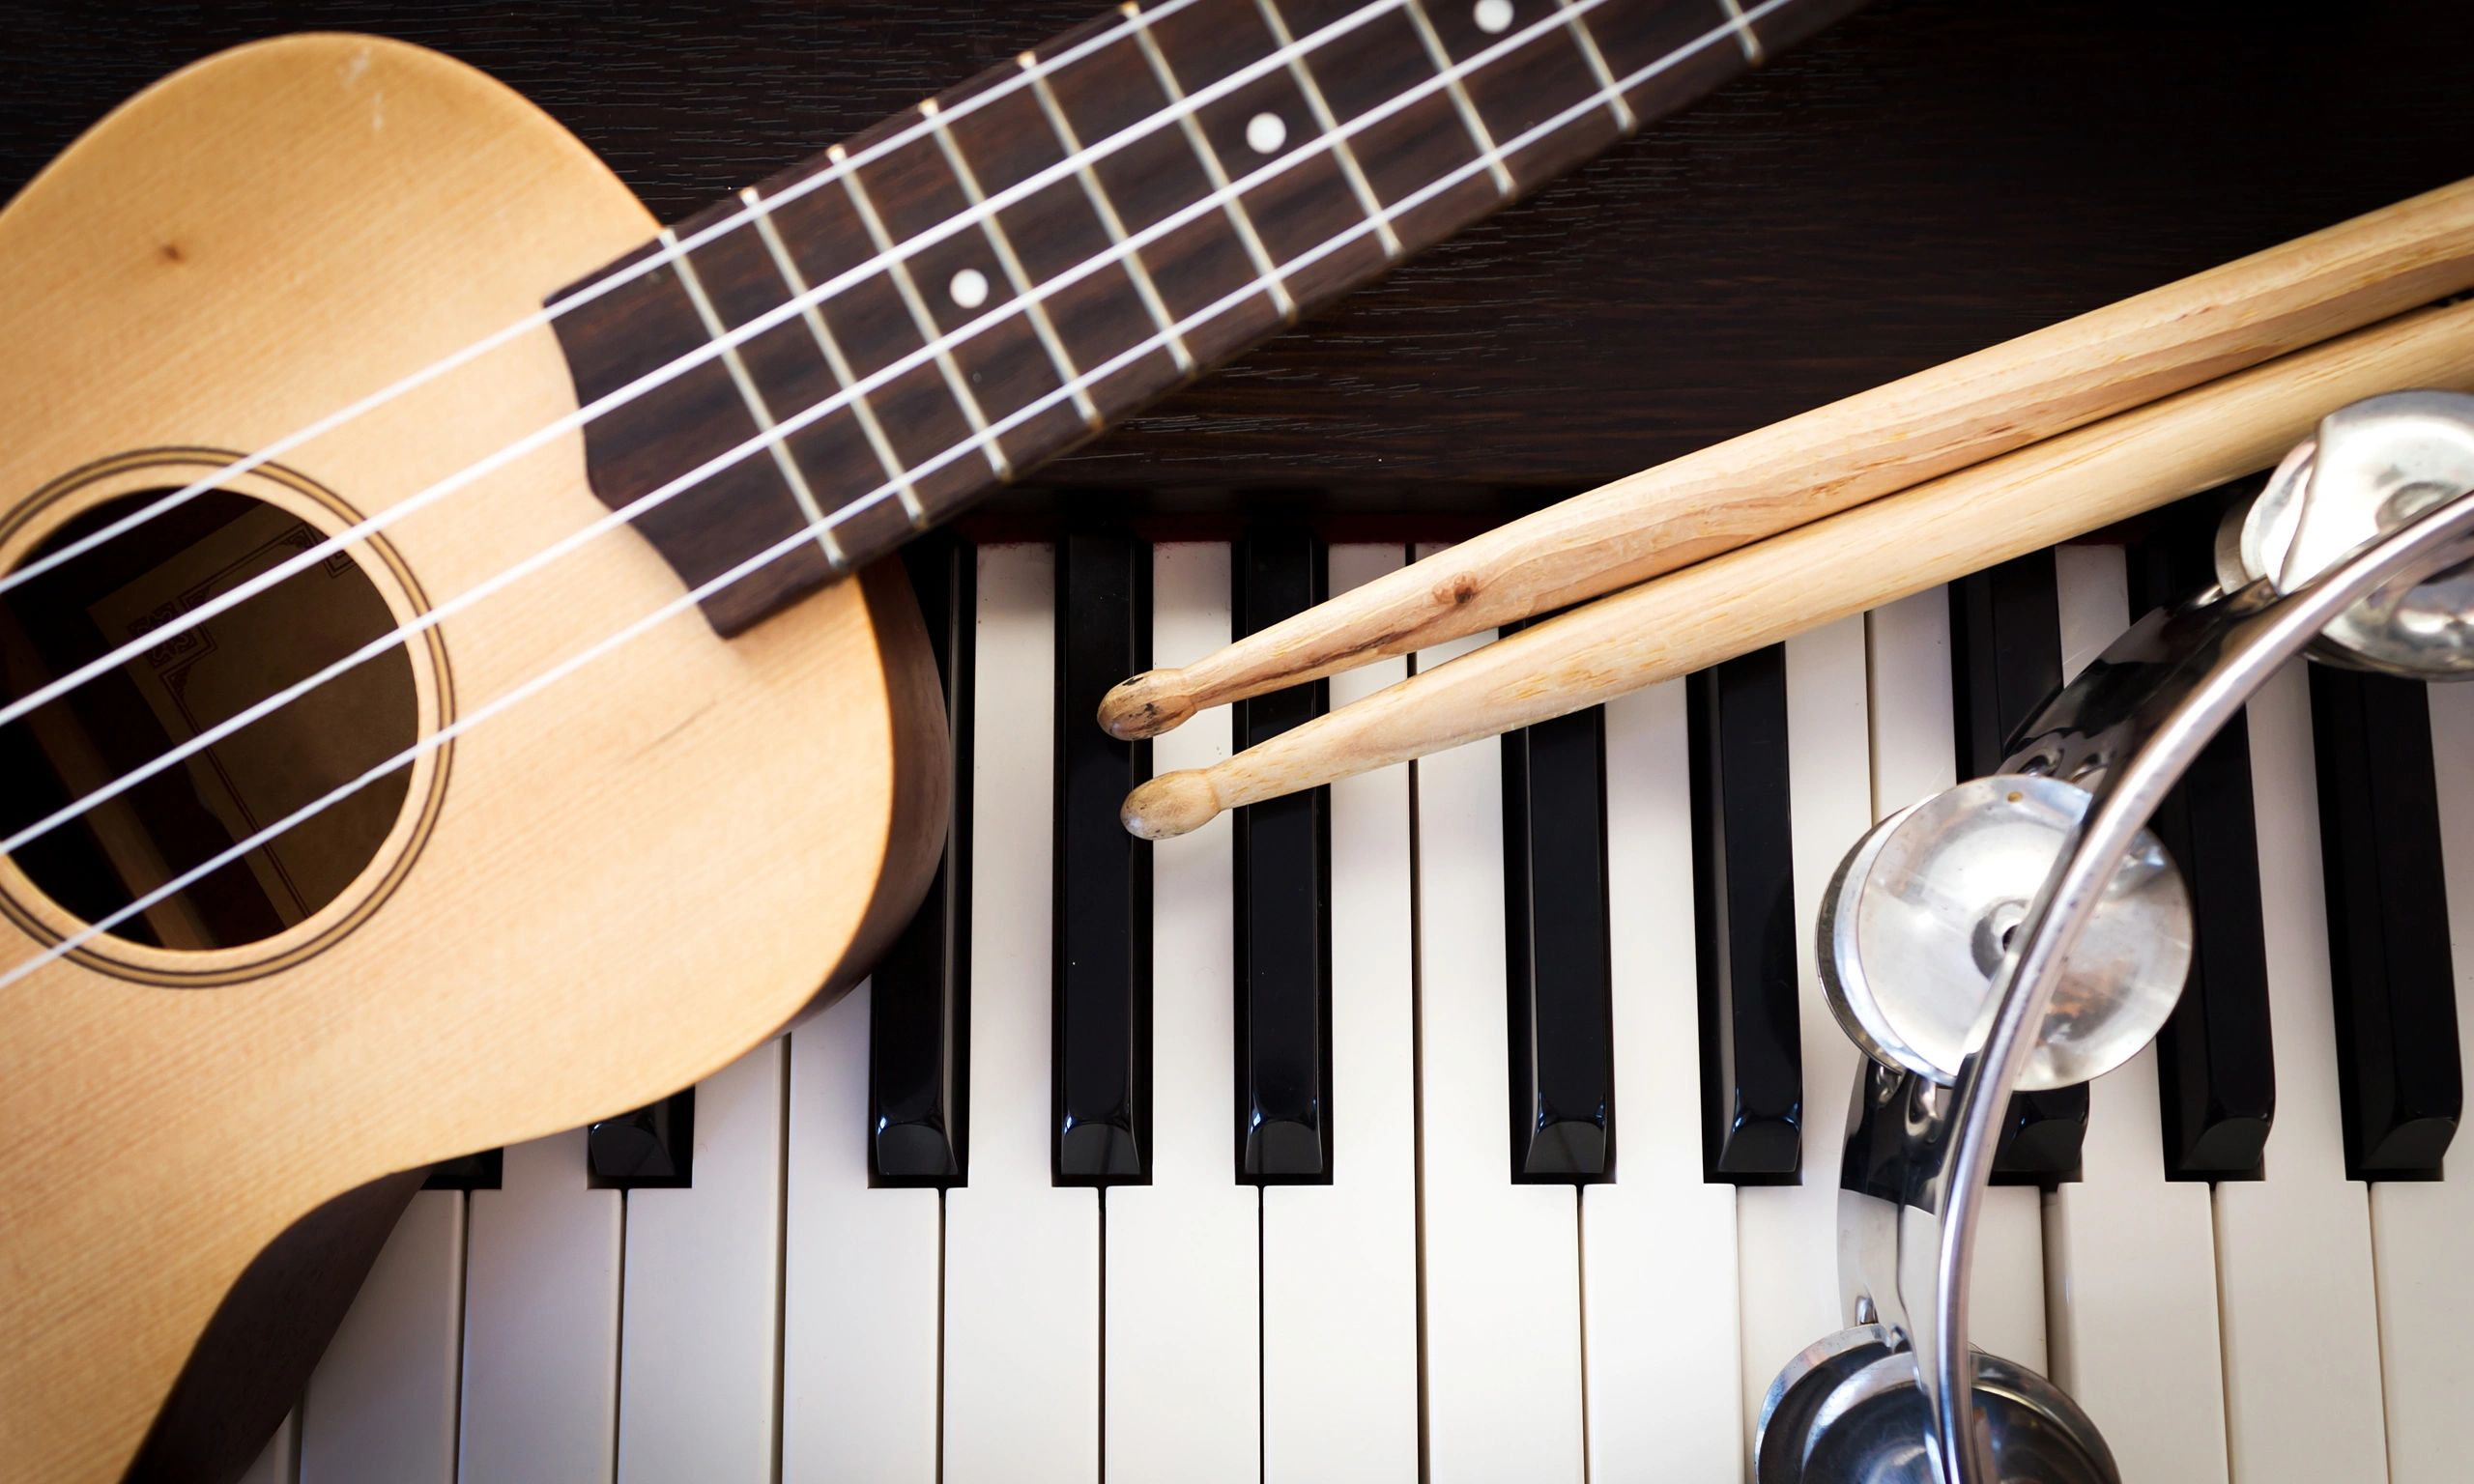 Ukulele, drum sticks, tambourine, and piano keyboard